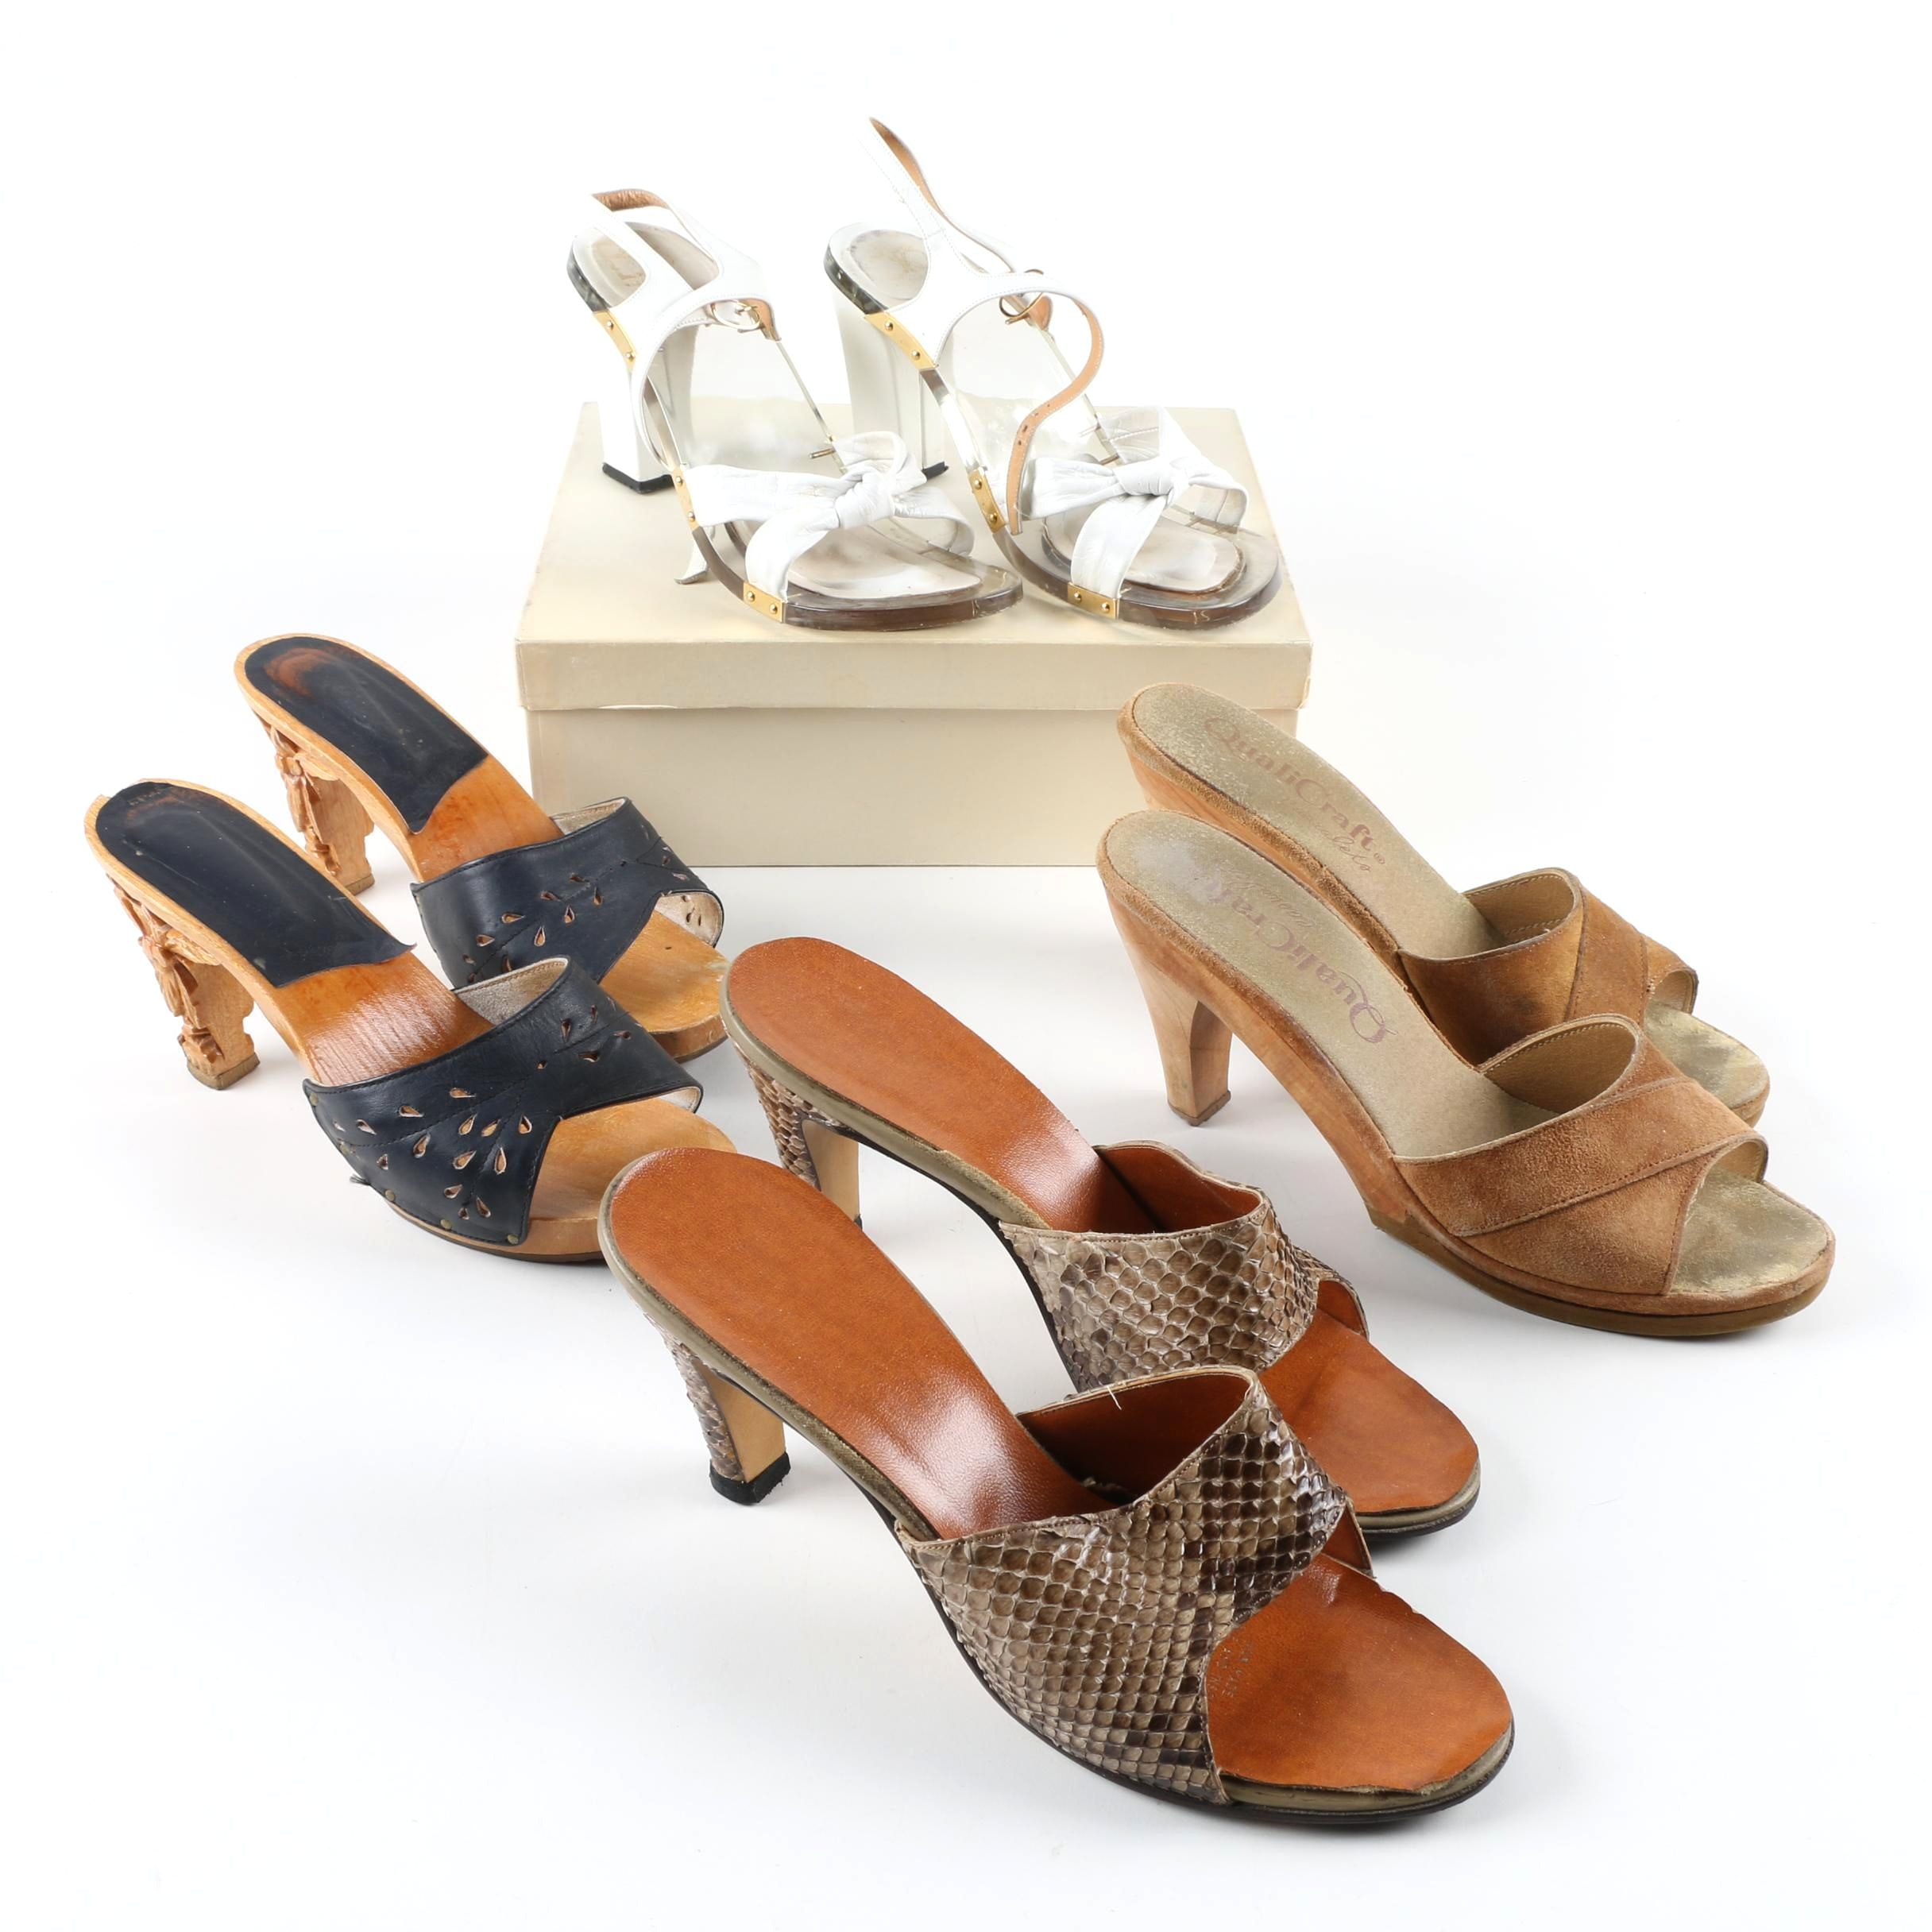 Women's Vintage Heeled Sandals Including Carved Heels and Python Skin